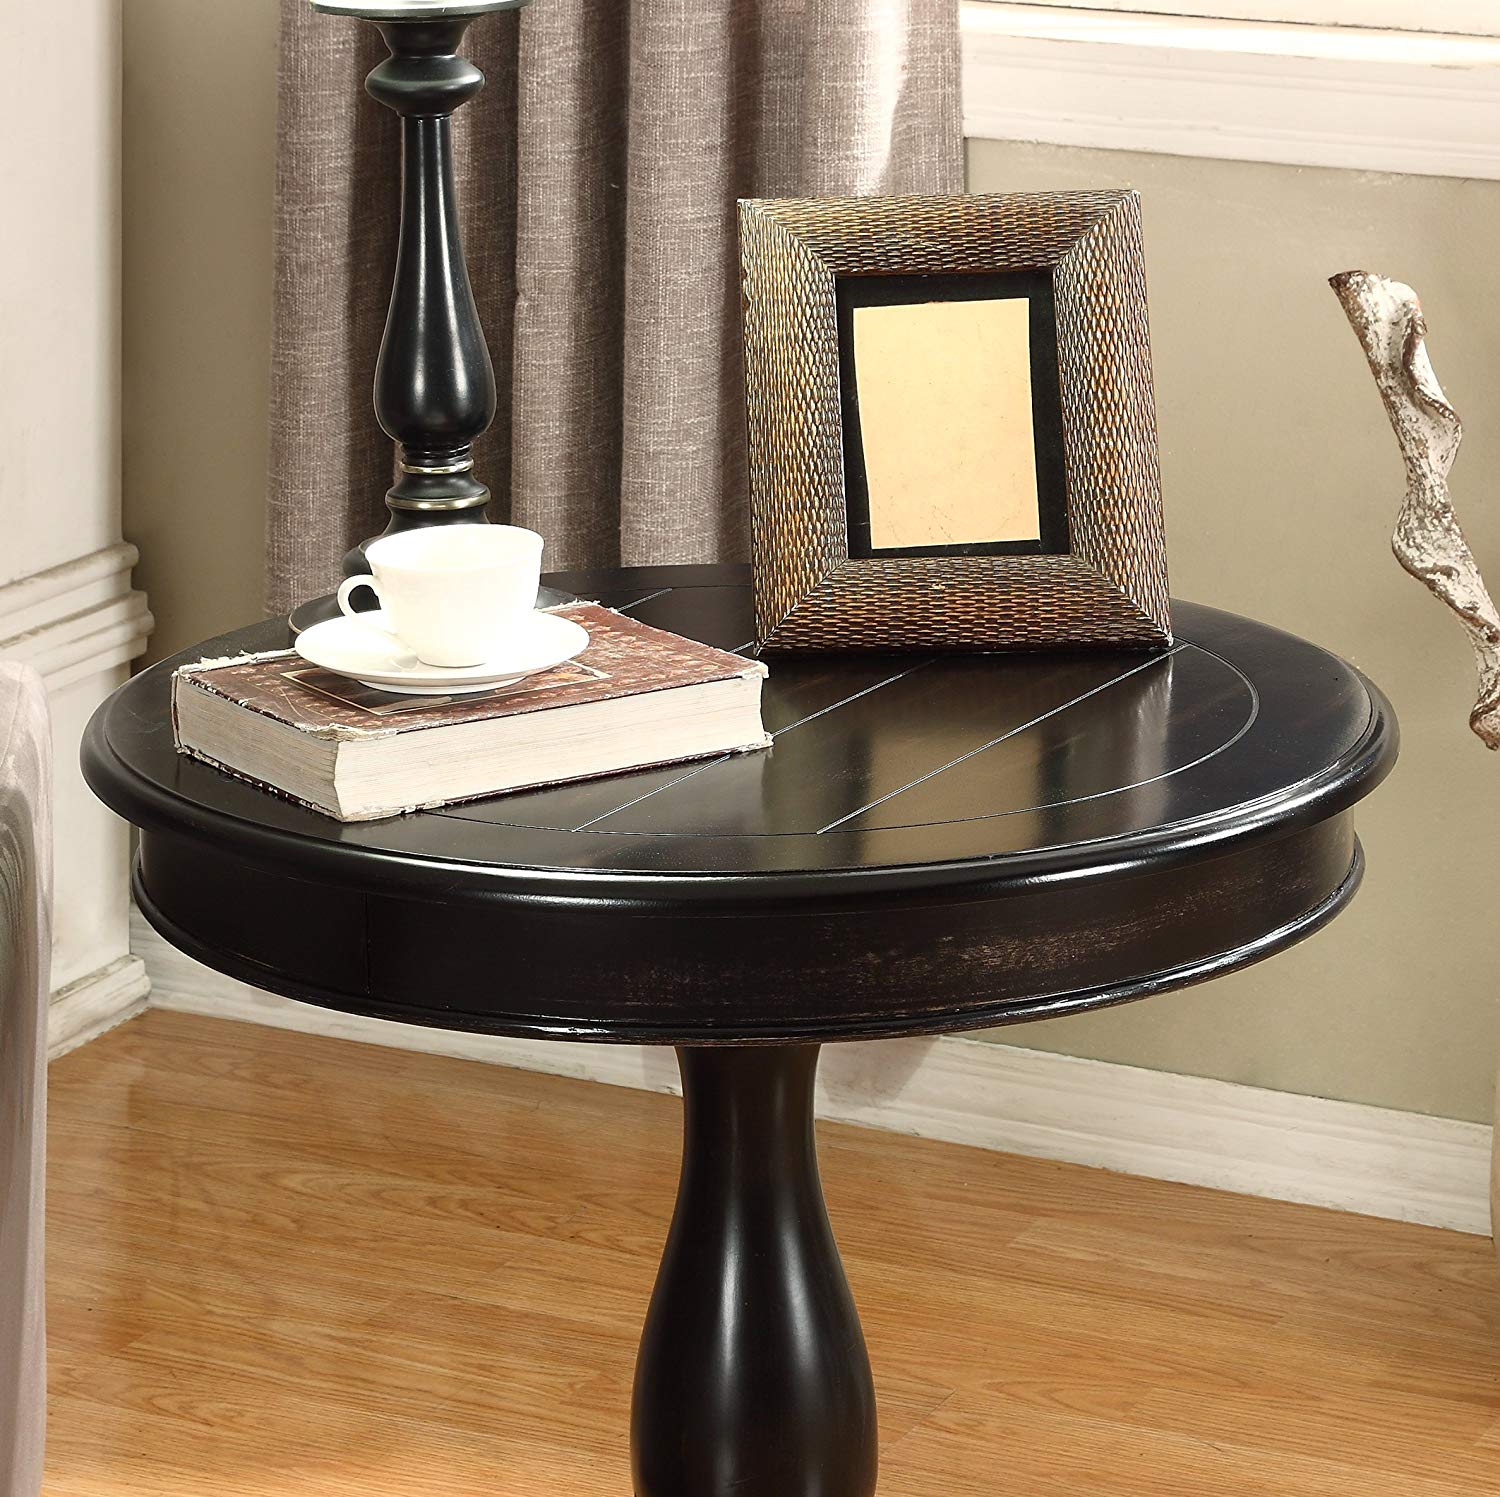 roundhill furniture rene round wood pedestal side table avalon accent black kitchen dining pottery barn hammock silver console hall with drawers turned legs green lamps